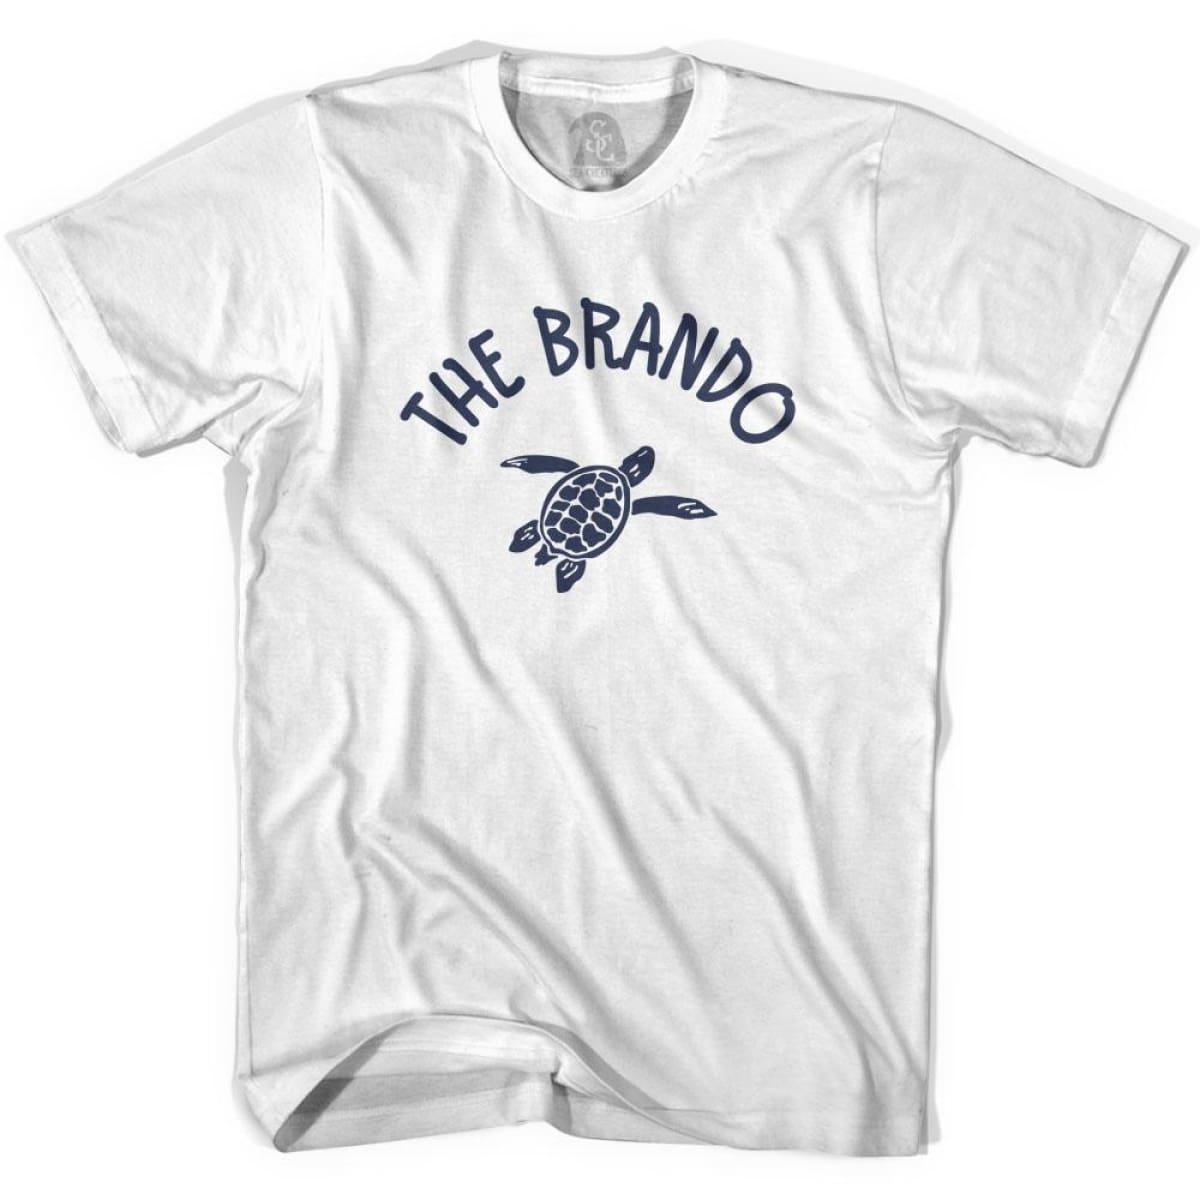 The Brando Beach Sea Turtle Adult Cotton T-shirt - White / Adult Small - Turtle T-shirts